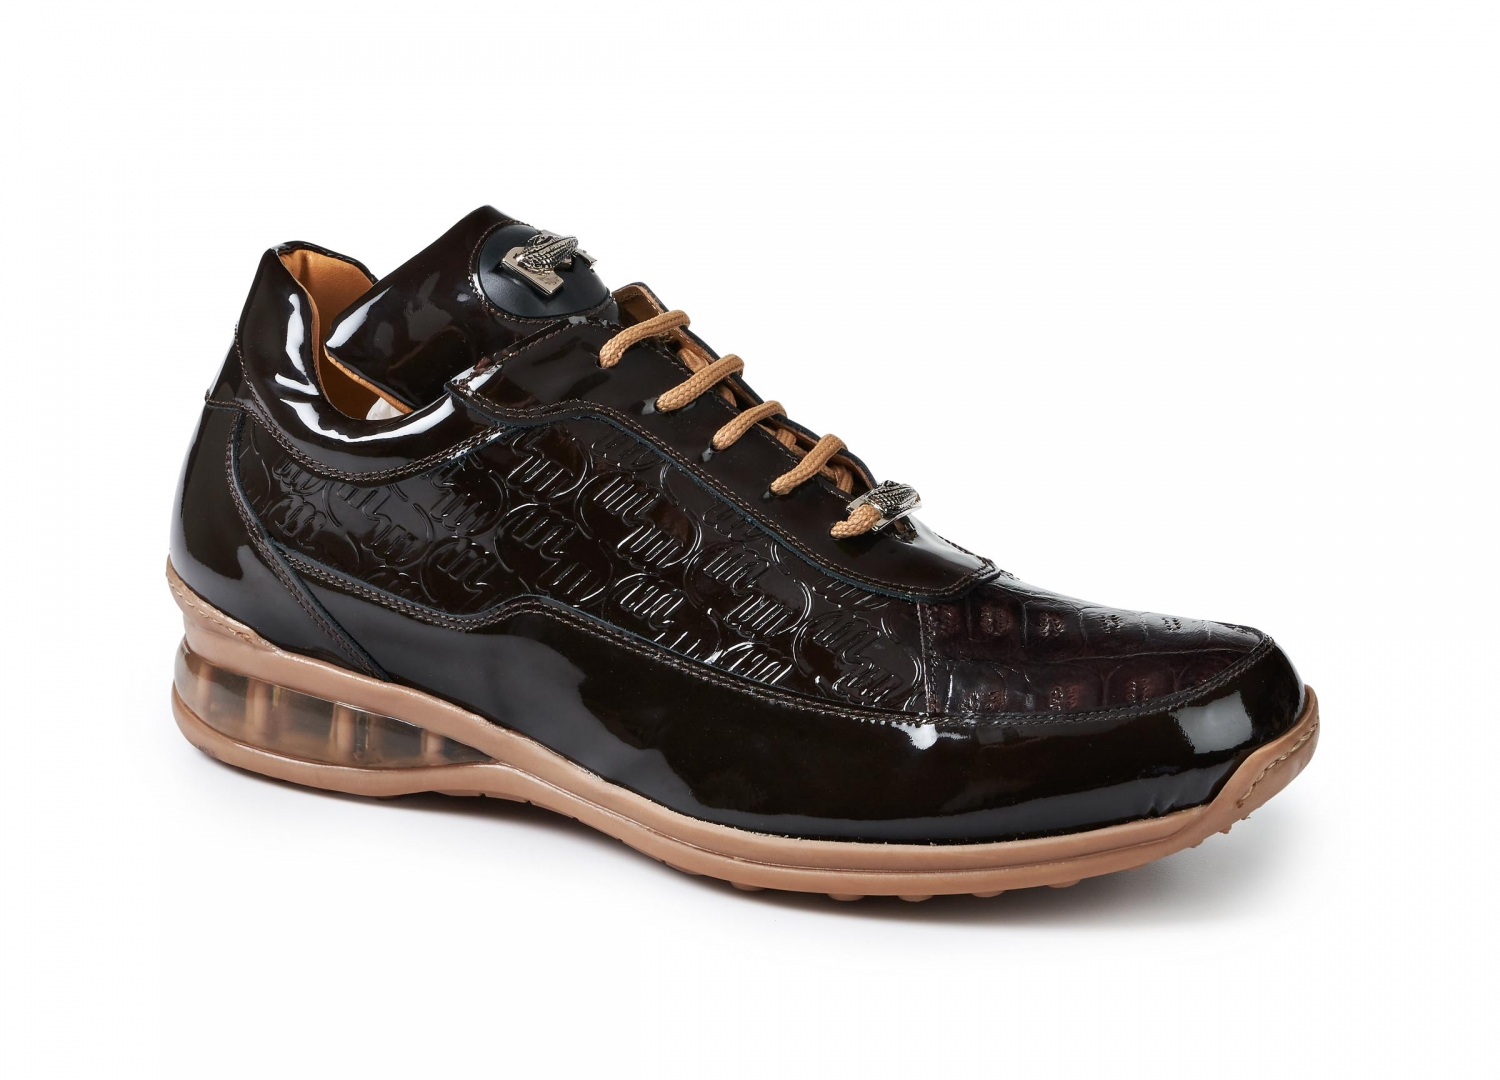 2020 Mauri Bubble Patent Leather Logo Sneaker Brown 8900/2